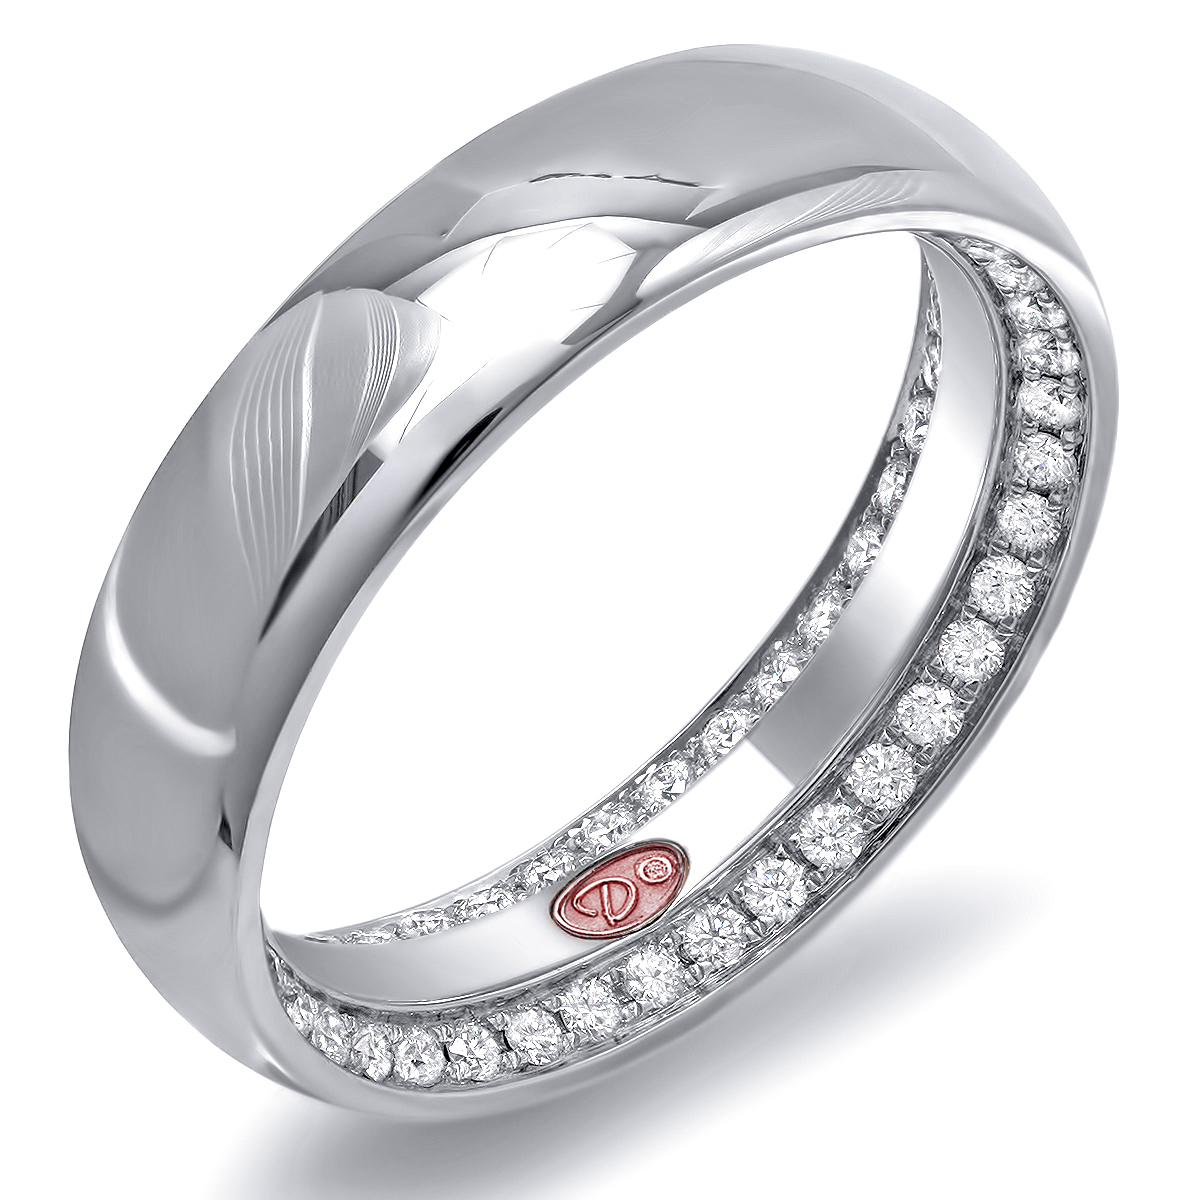 designs wedding amazing new with design of elegant pic style ring jewellery rings